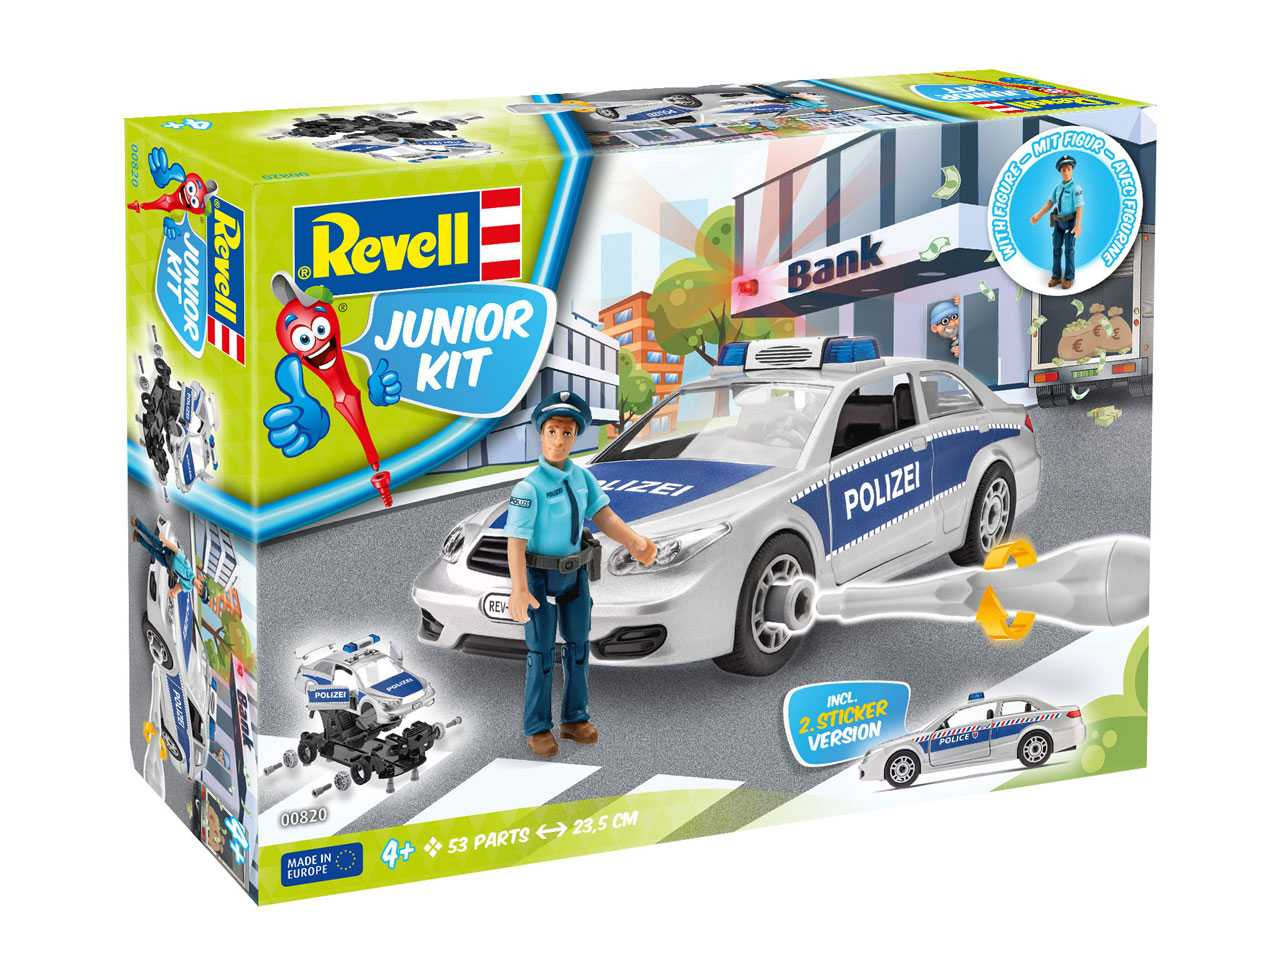 1:20 Police Car with Figure (Junior Kit)